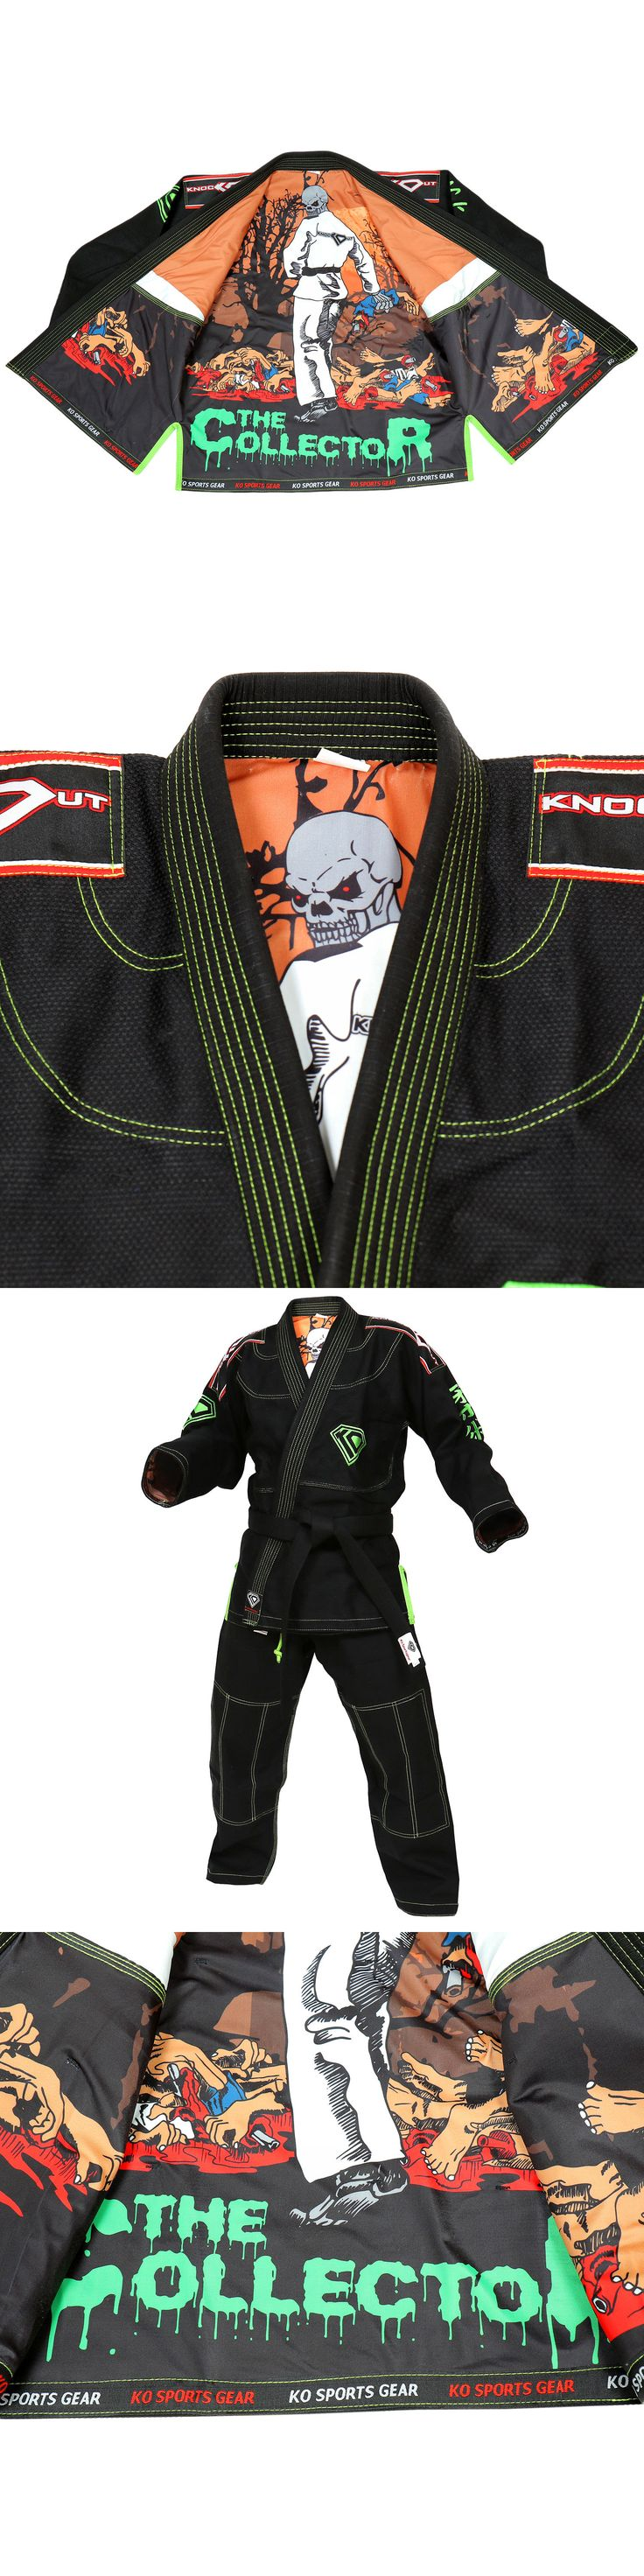 Other Combat Sport Supplies 16044: Ko Sports Gears Black Collector Gi - Bjj Kimono And Pants - Pearl Weave -> BUY IT NOW ONLY: $129.99 on eBay!